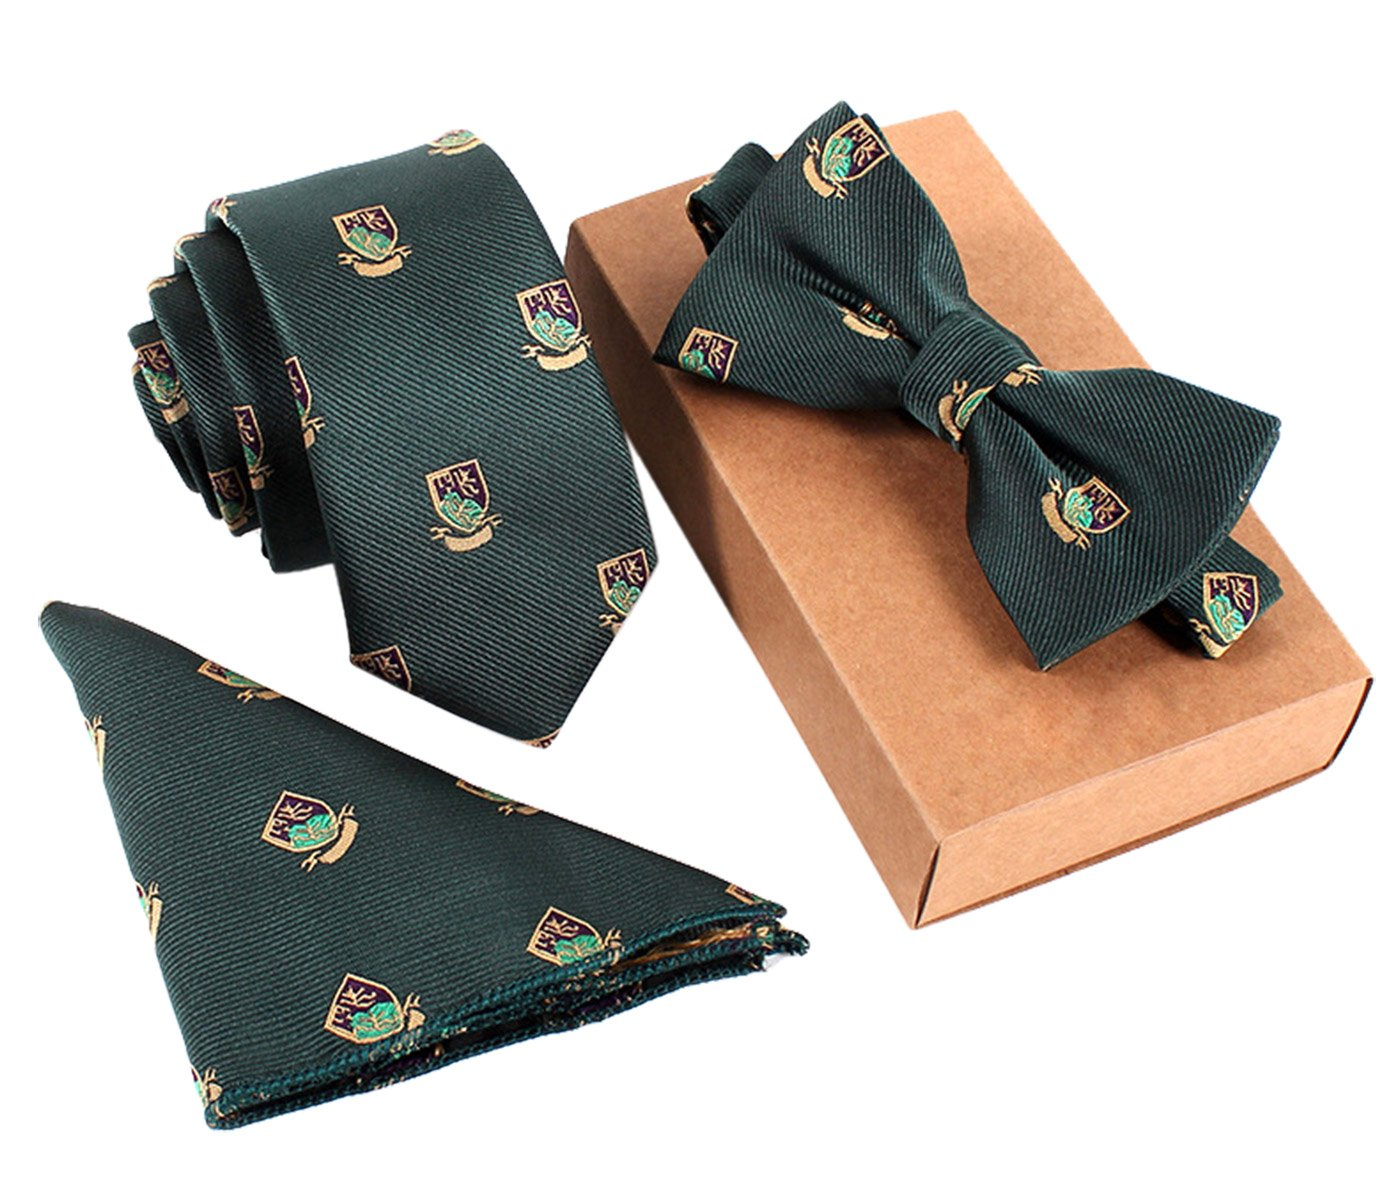 Necktie/Bow Tie/Pocket Square Fashionable Formal/Informal Ties Set Necktie Knot Black Panegy